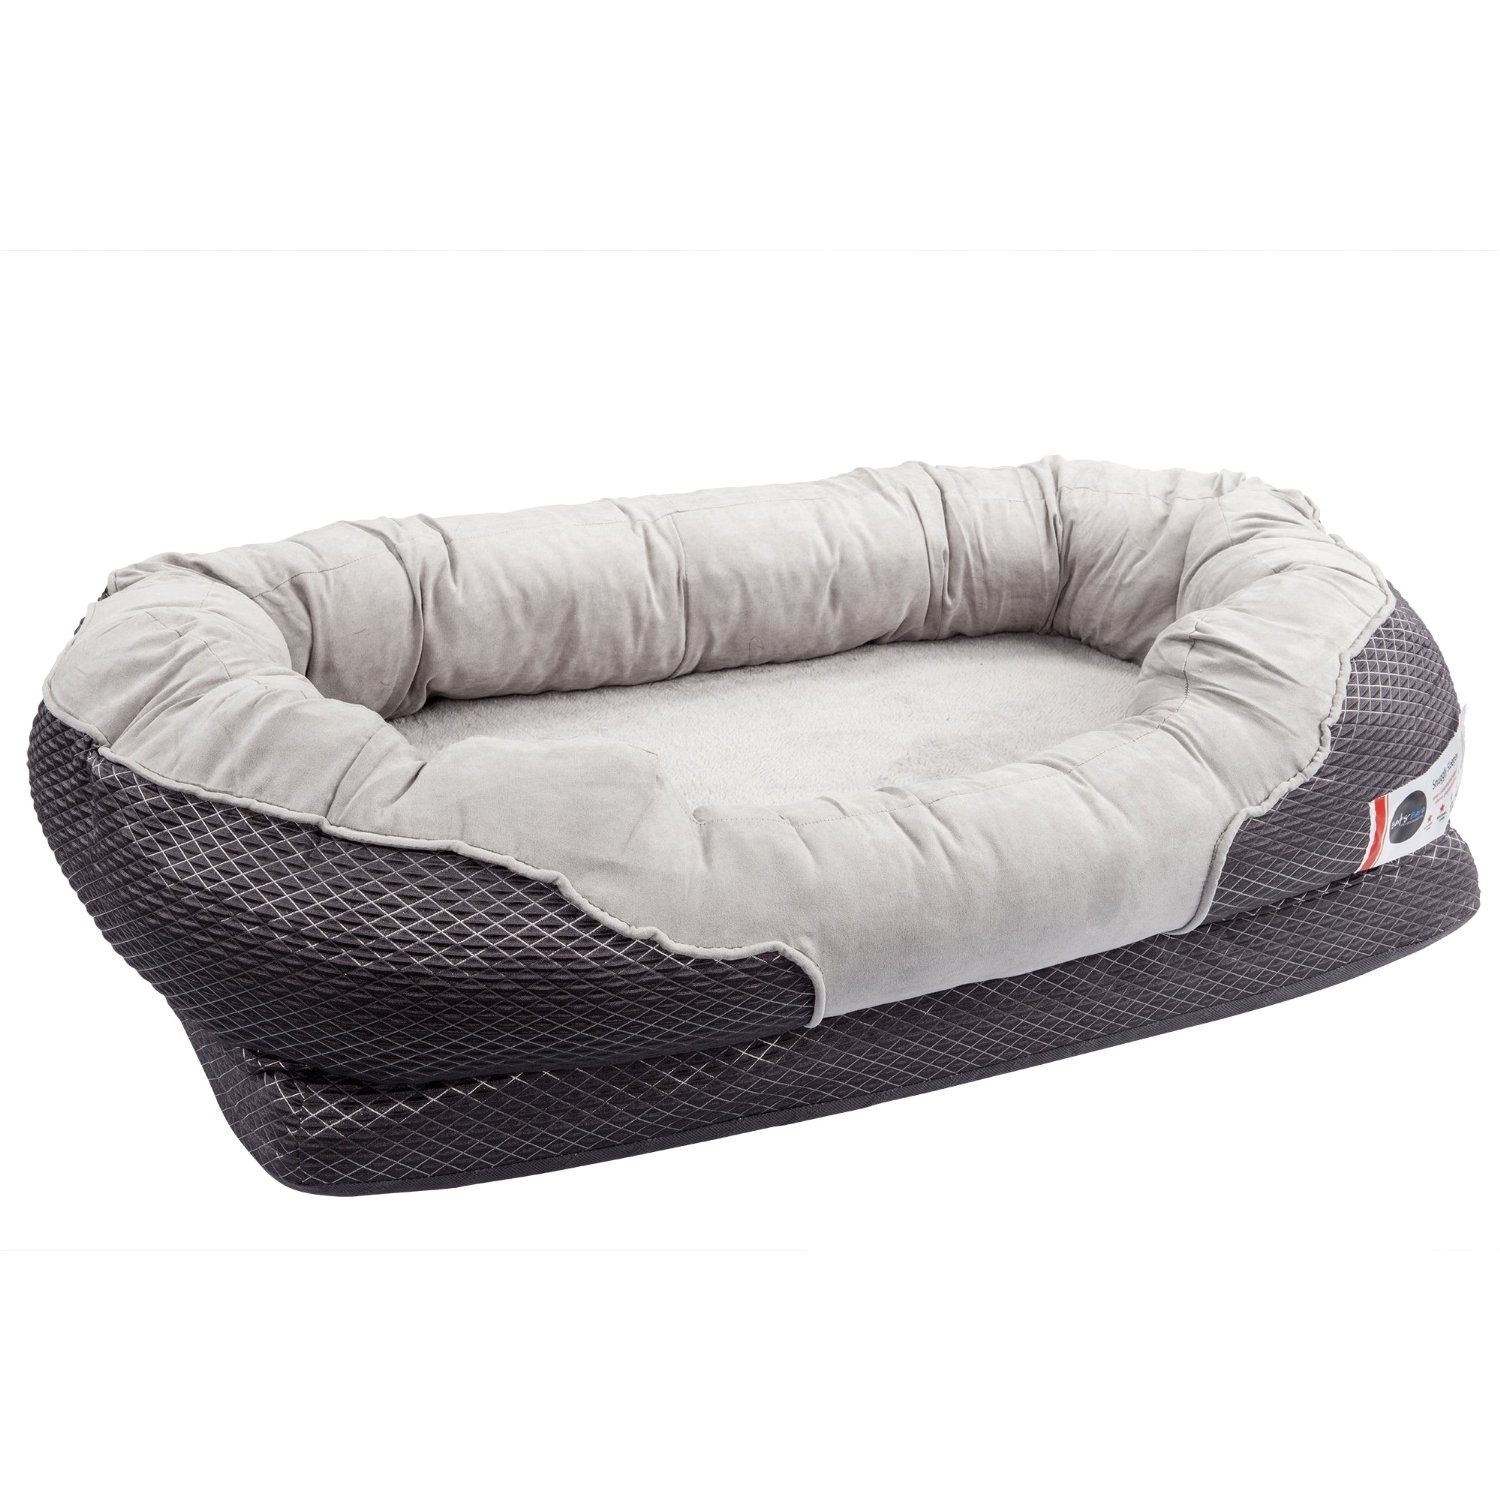 kong lounger dog bed and other lounger beds